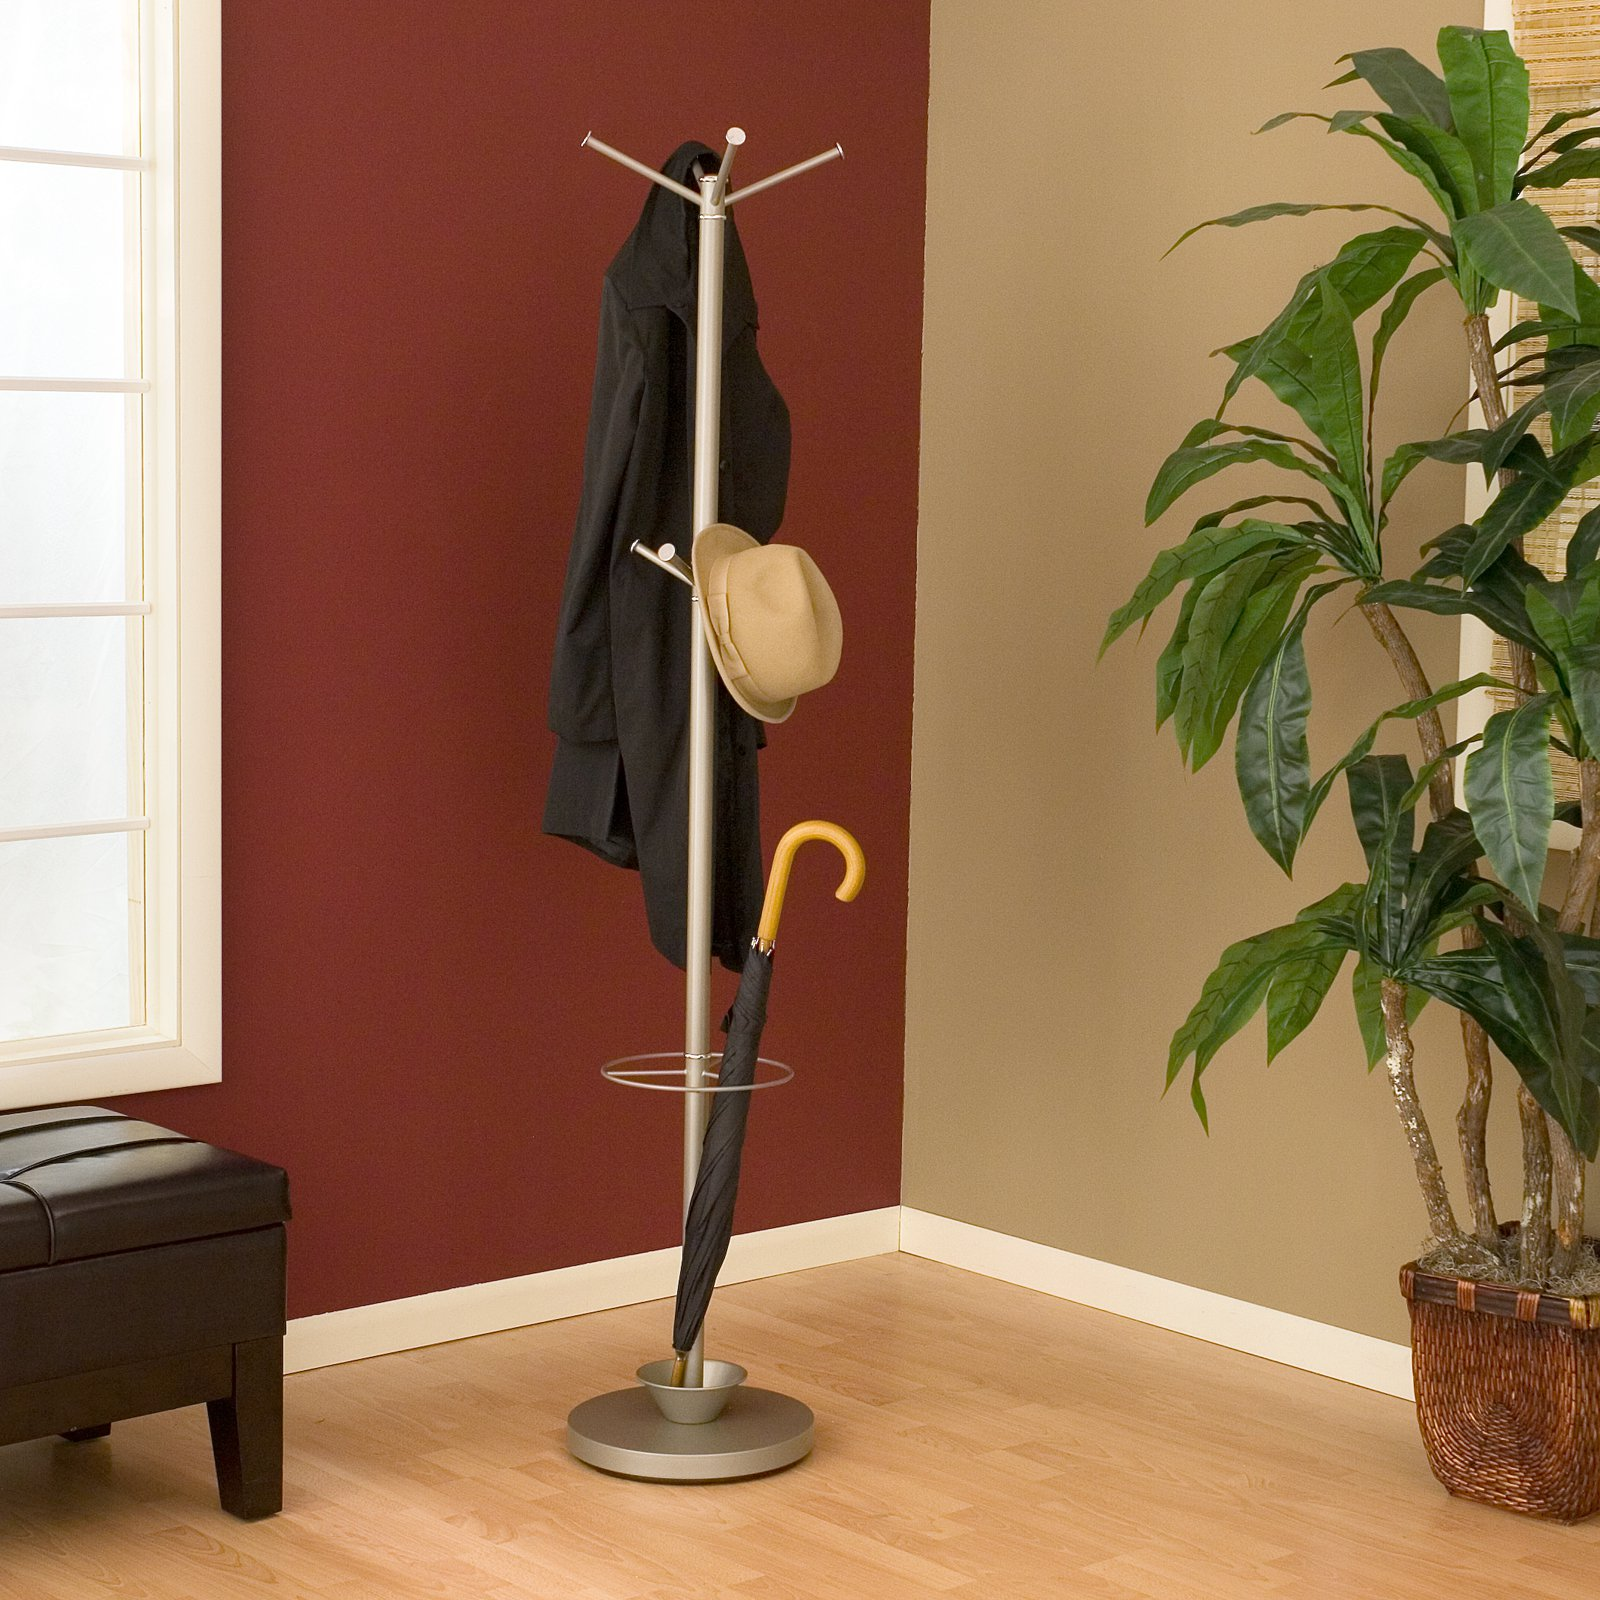 Quatro Umbrella Stand/Coat Rack, Brushed Steel